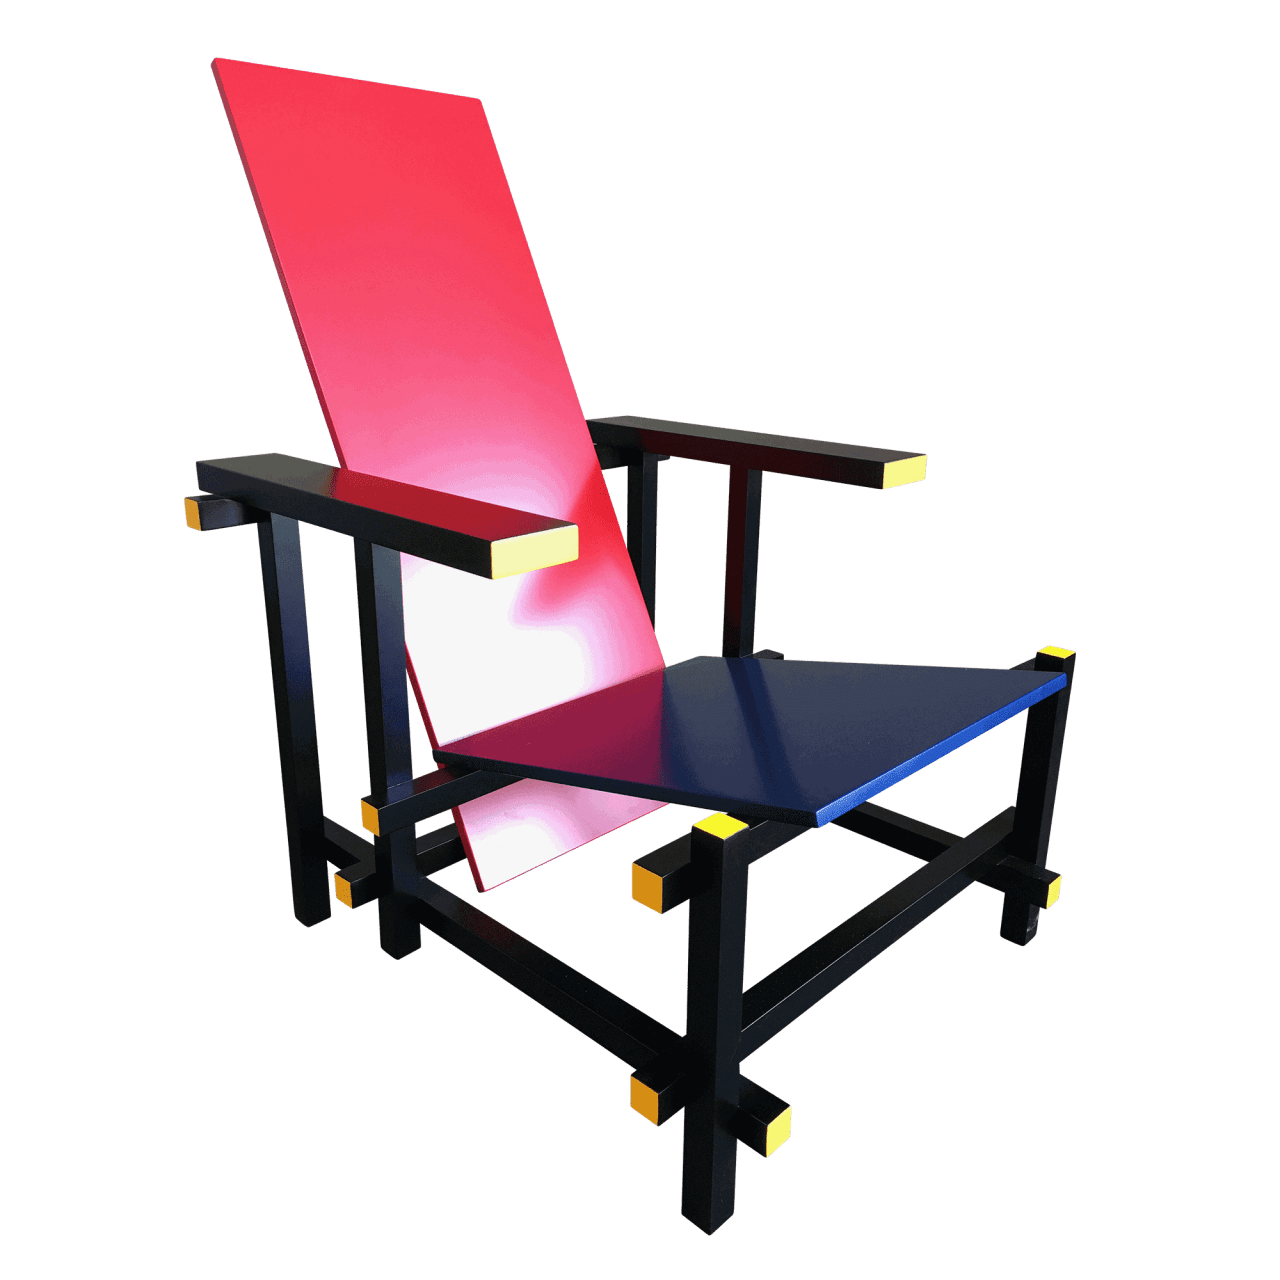 Sessel 635 03 Red and Blue/Black Version